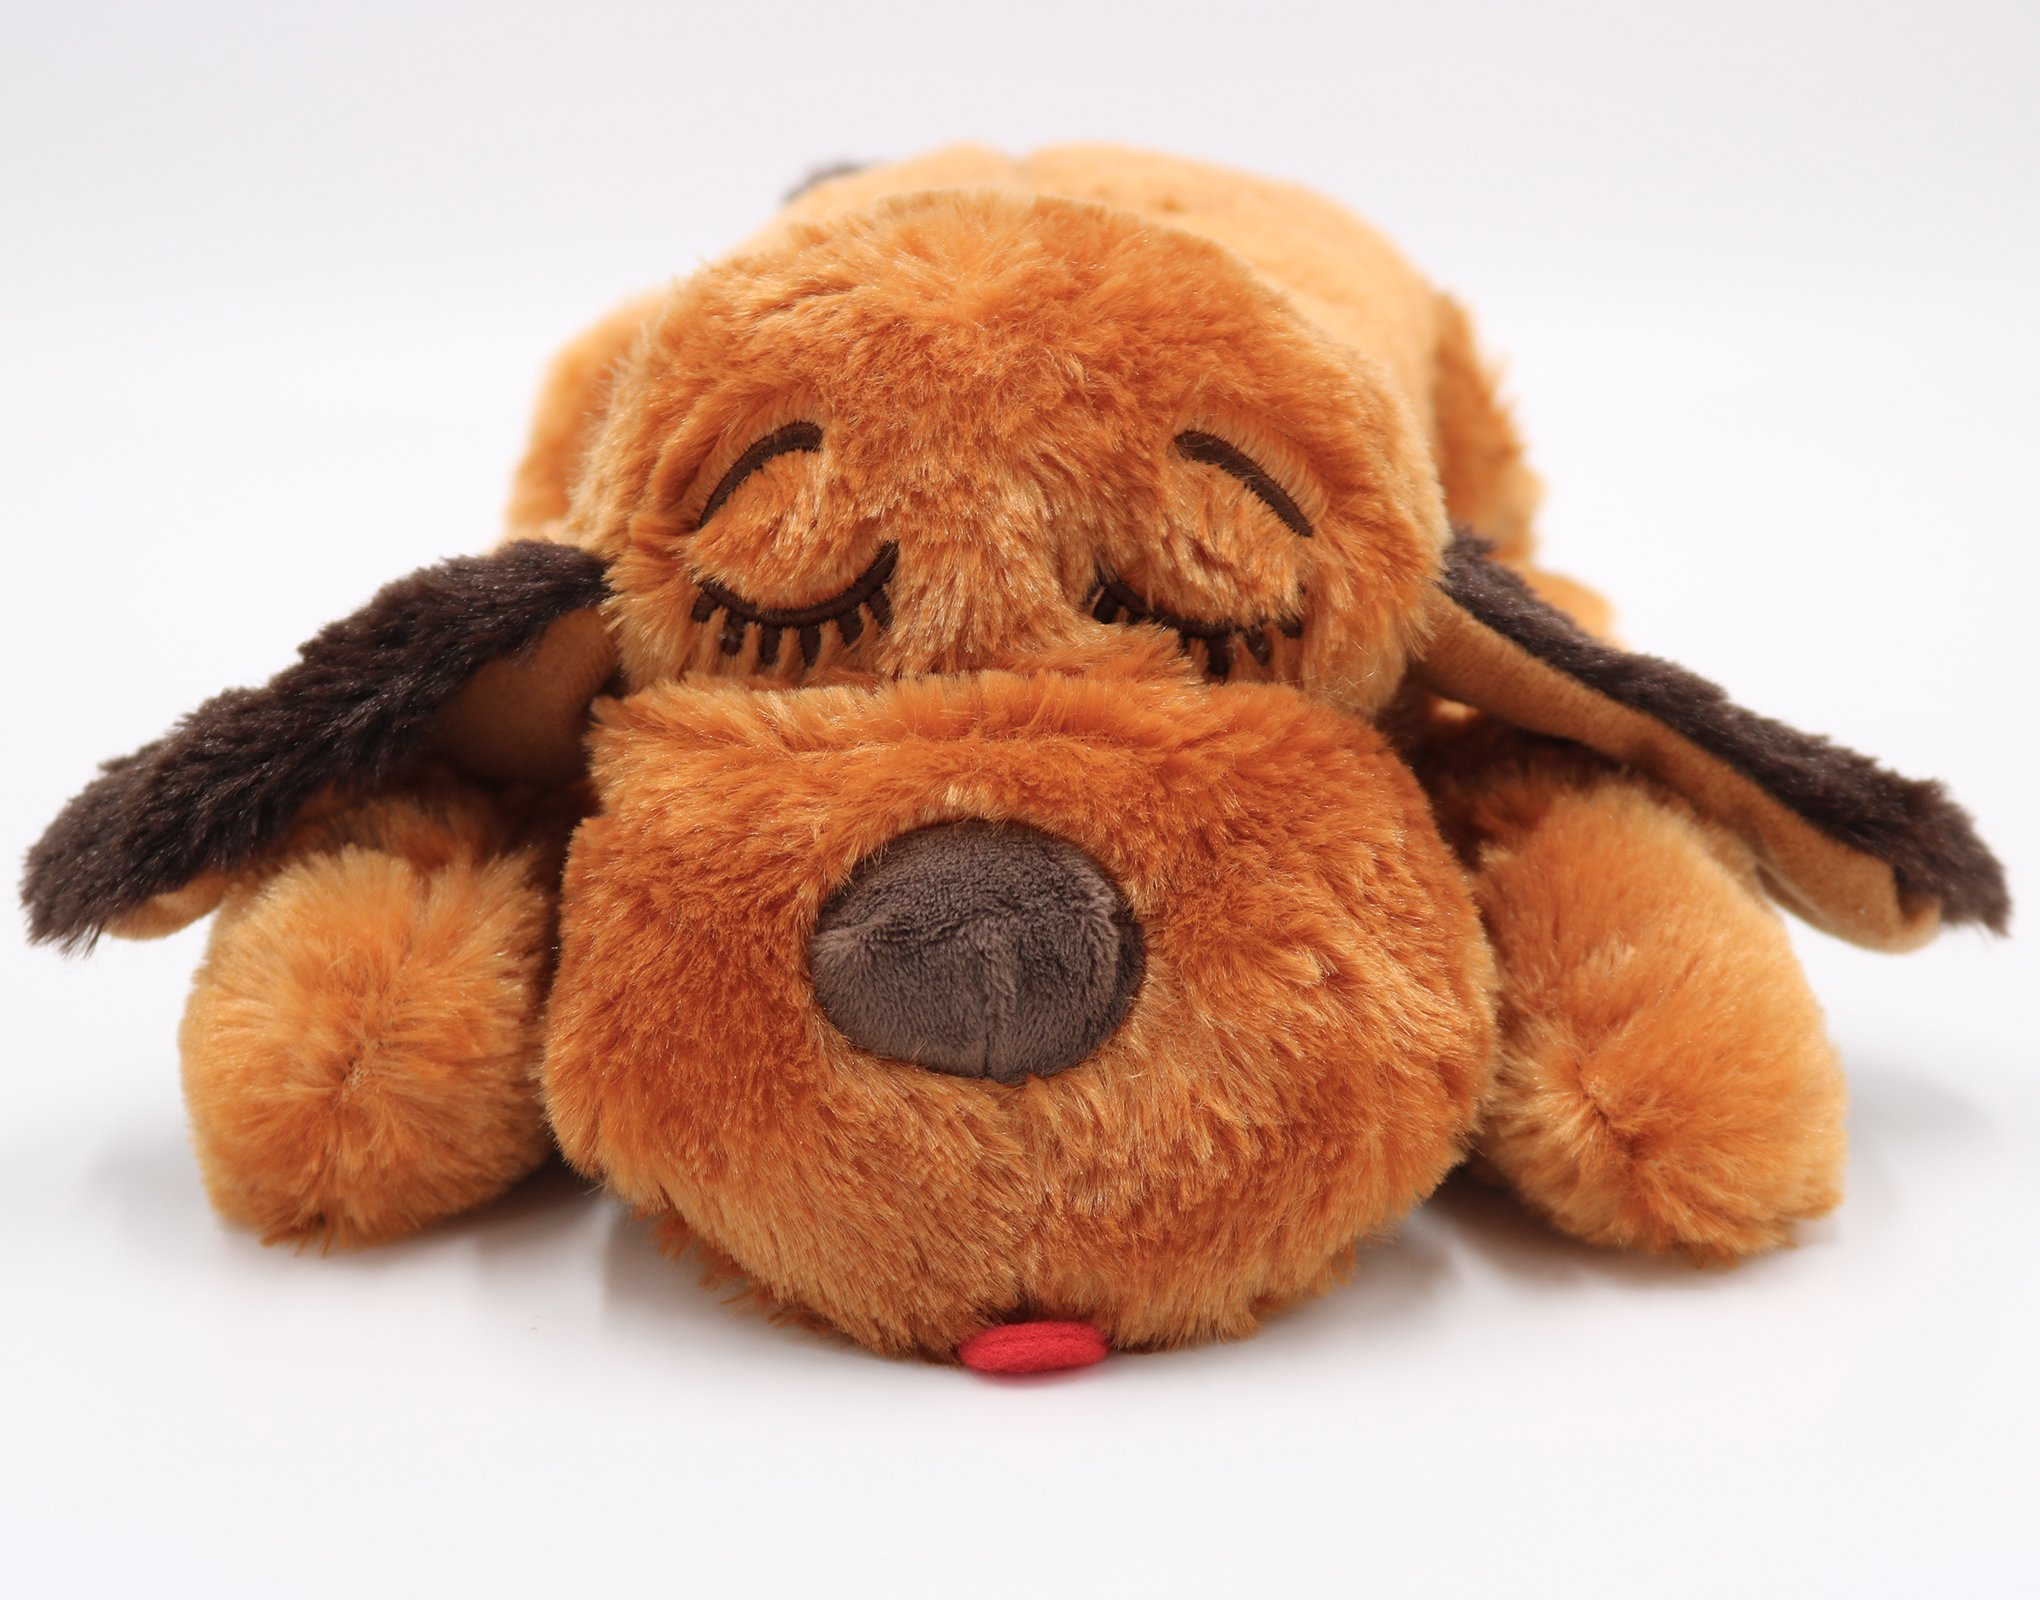 Smart Pet Love Snuggle Puppy Behavioral Aid Toy, Brown Mutt by Smart Pet Love (Image #2)